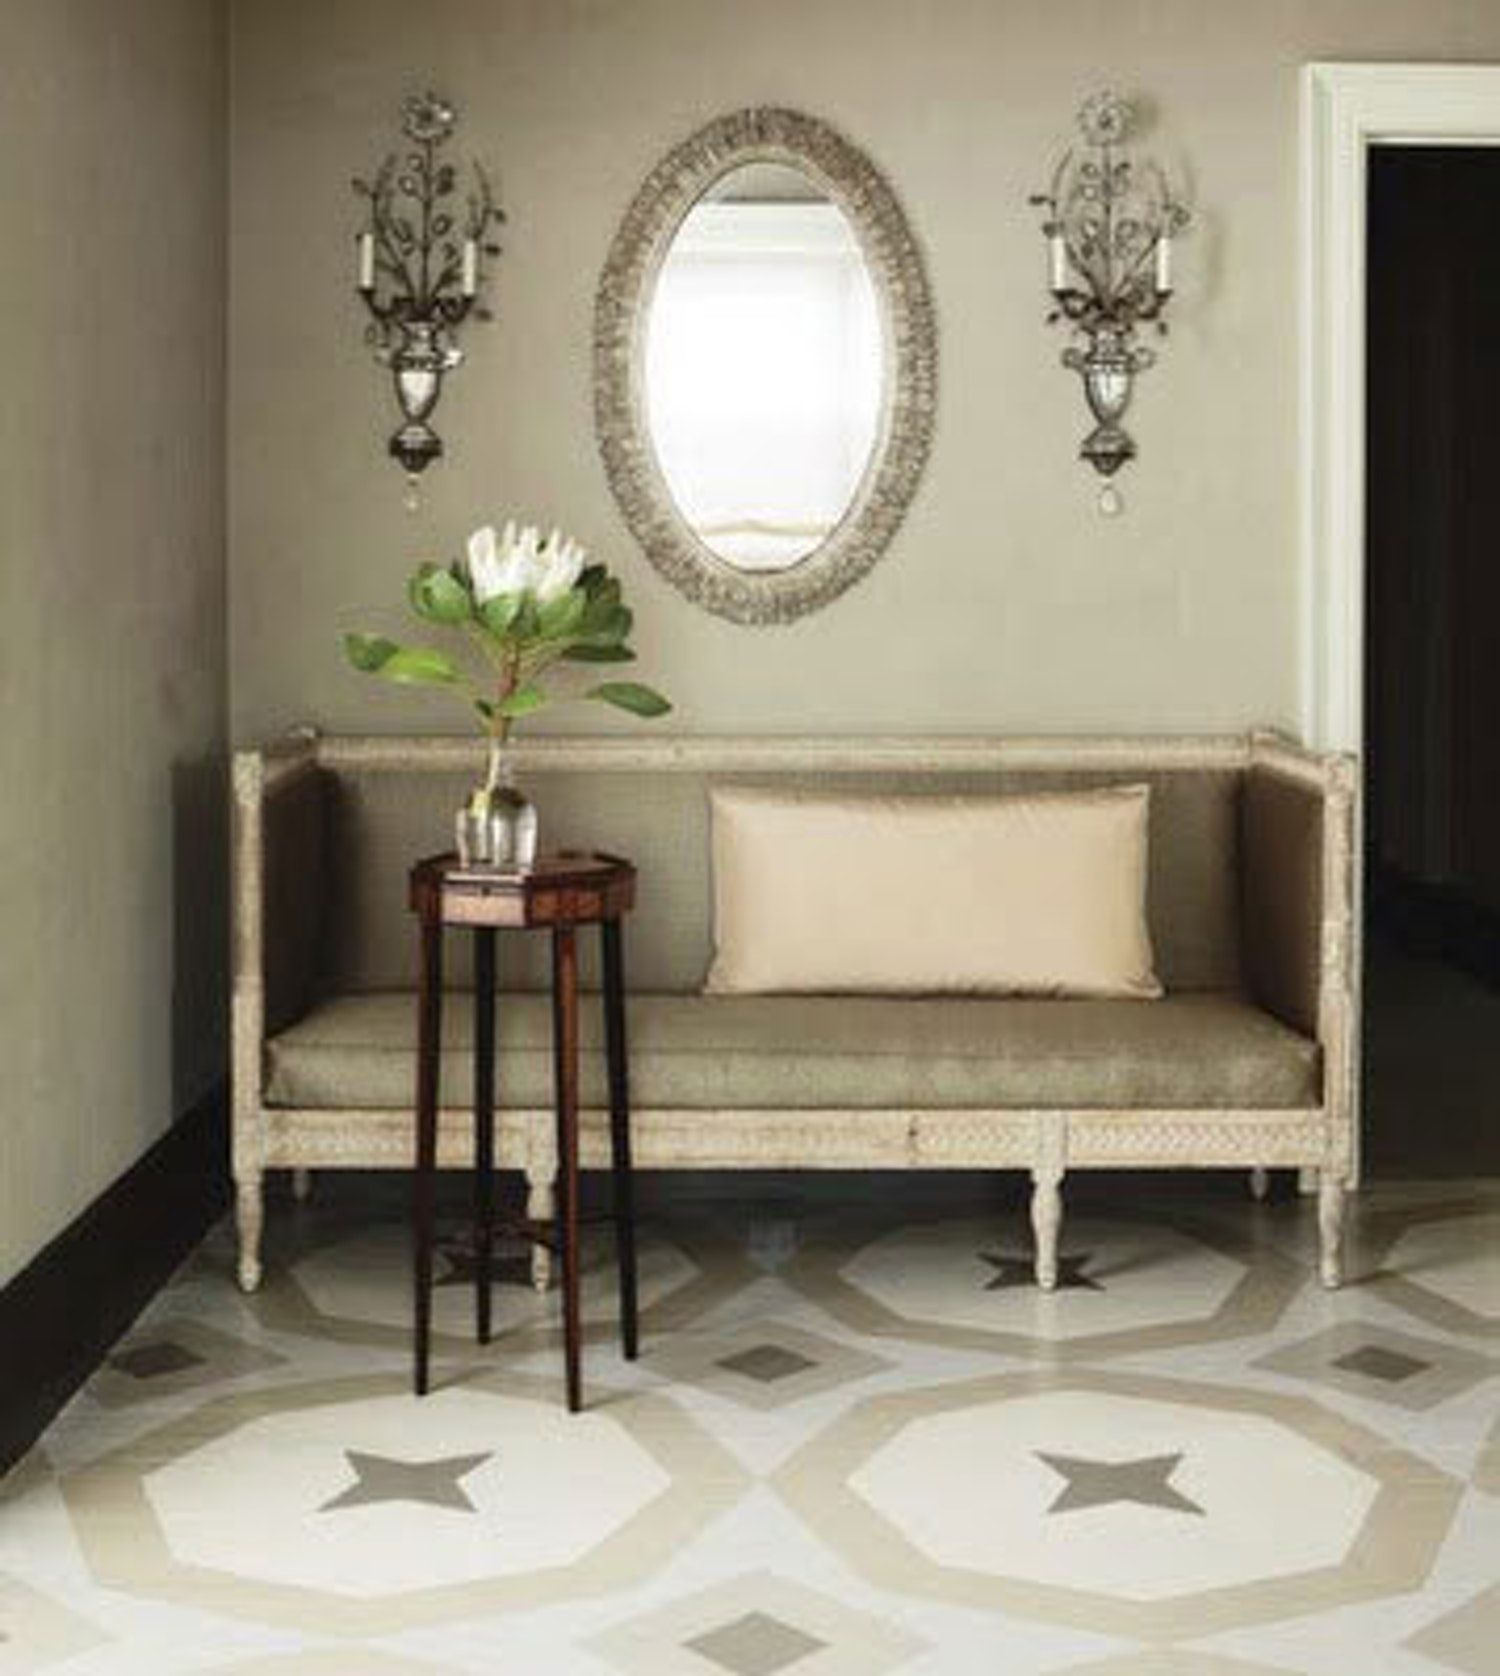 Painted Floors Inspiration Gallery